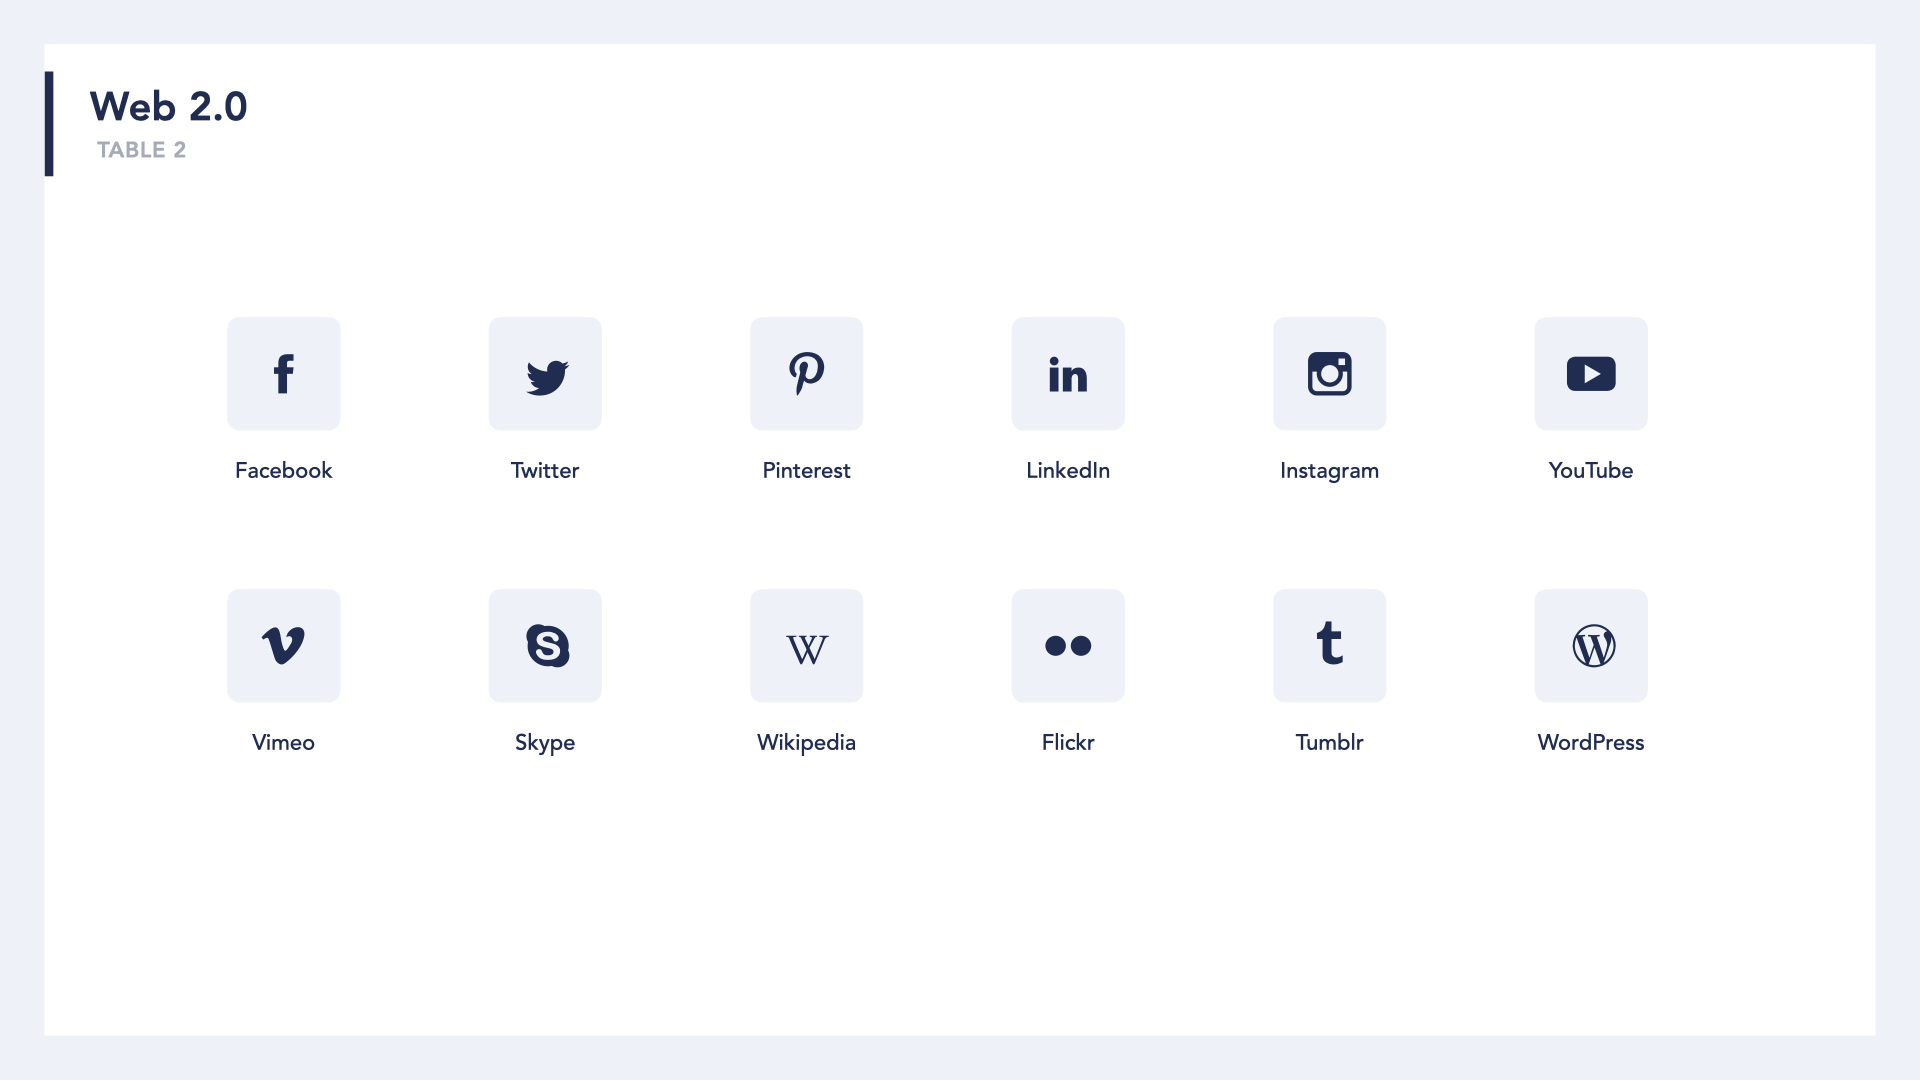 mash-up of Web 2.0 app logos, include at minimum Facebook, Twitter, Pinterest, and other social media platforms